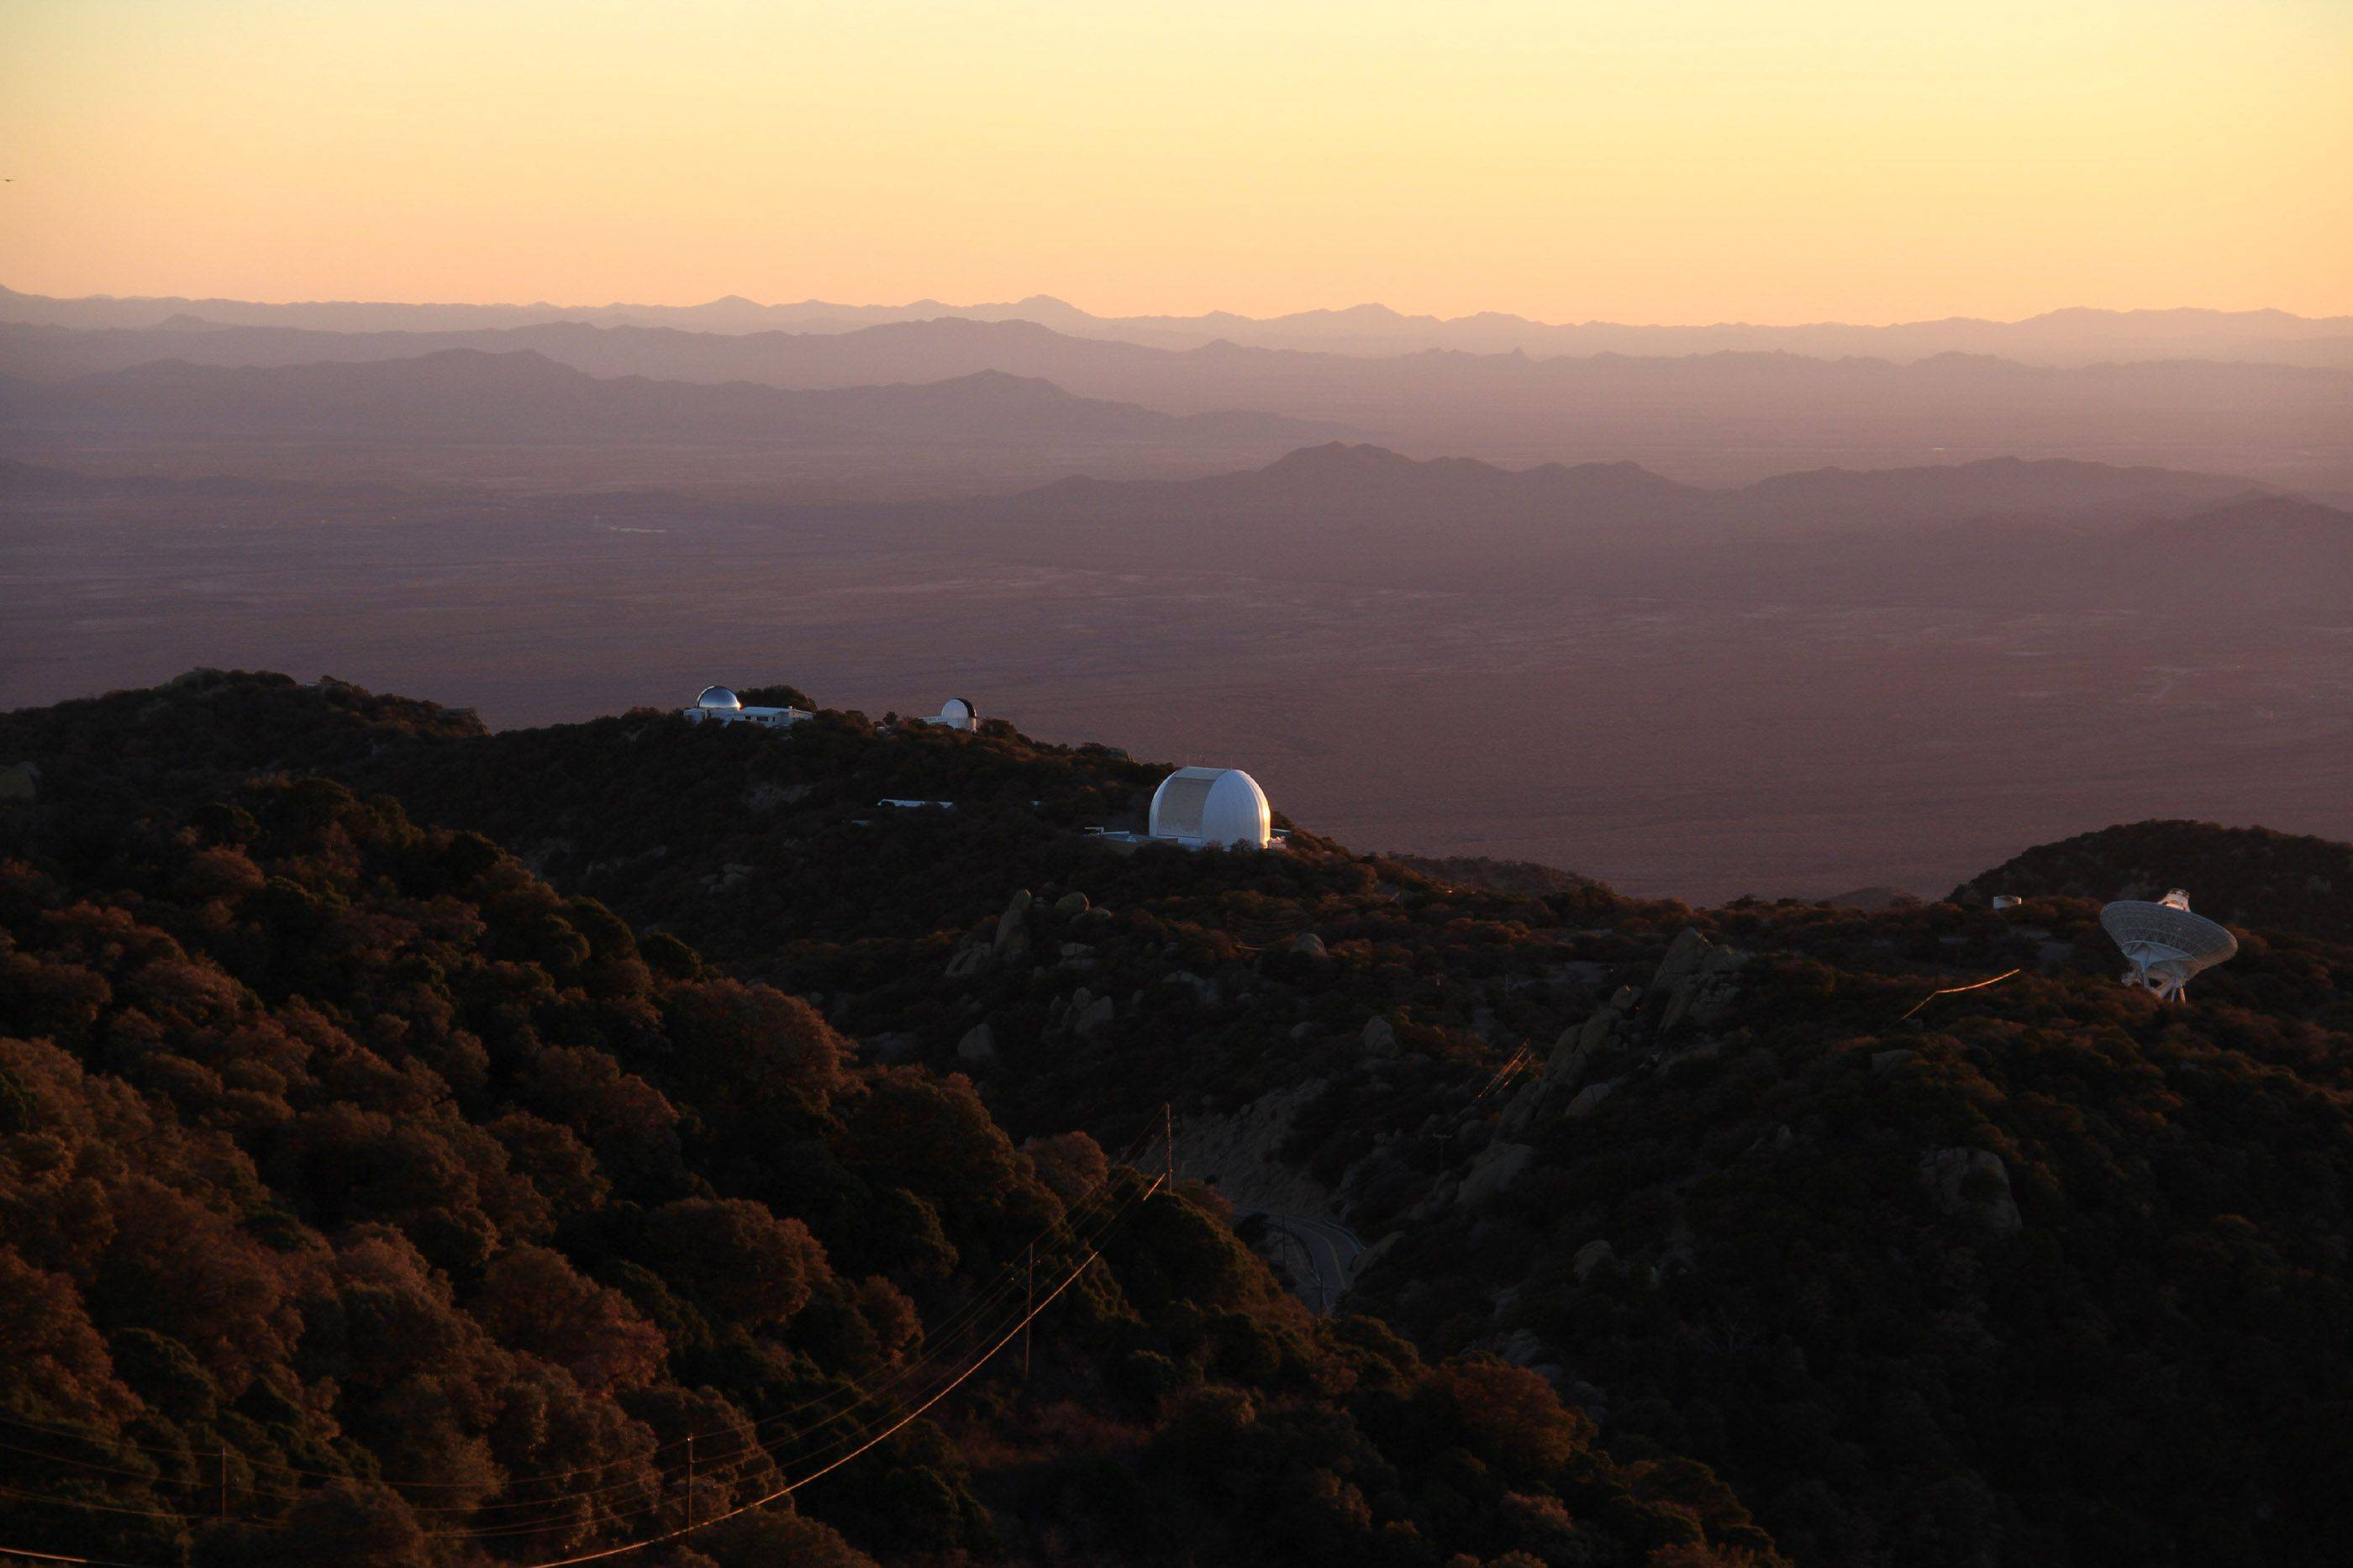 While on vacation with my wife Cindy, I photographed Kitt Peak National Observatory at sunset near Tucson, AZ.